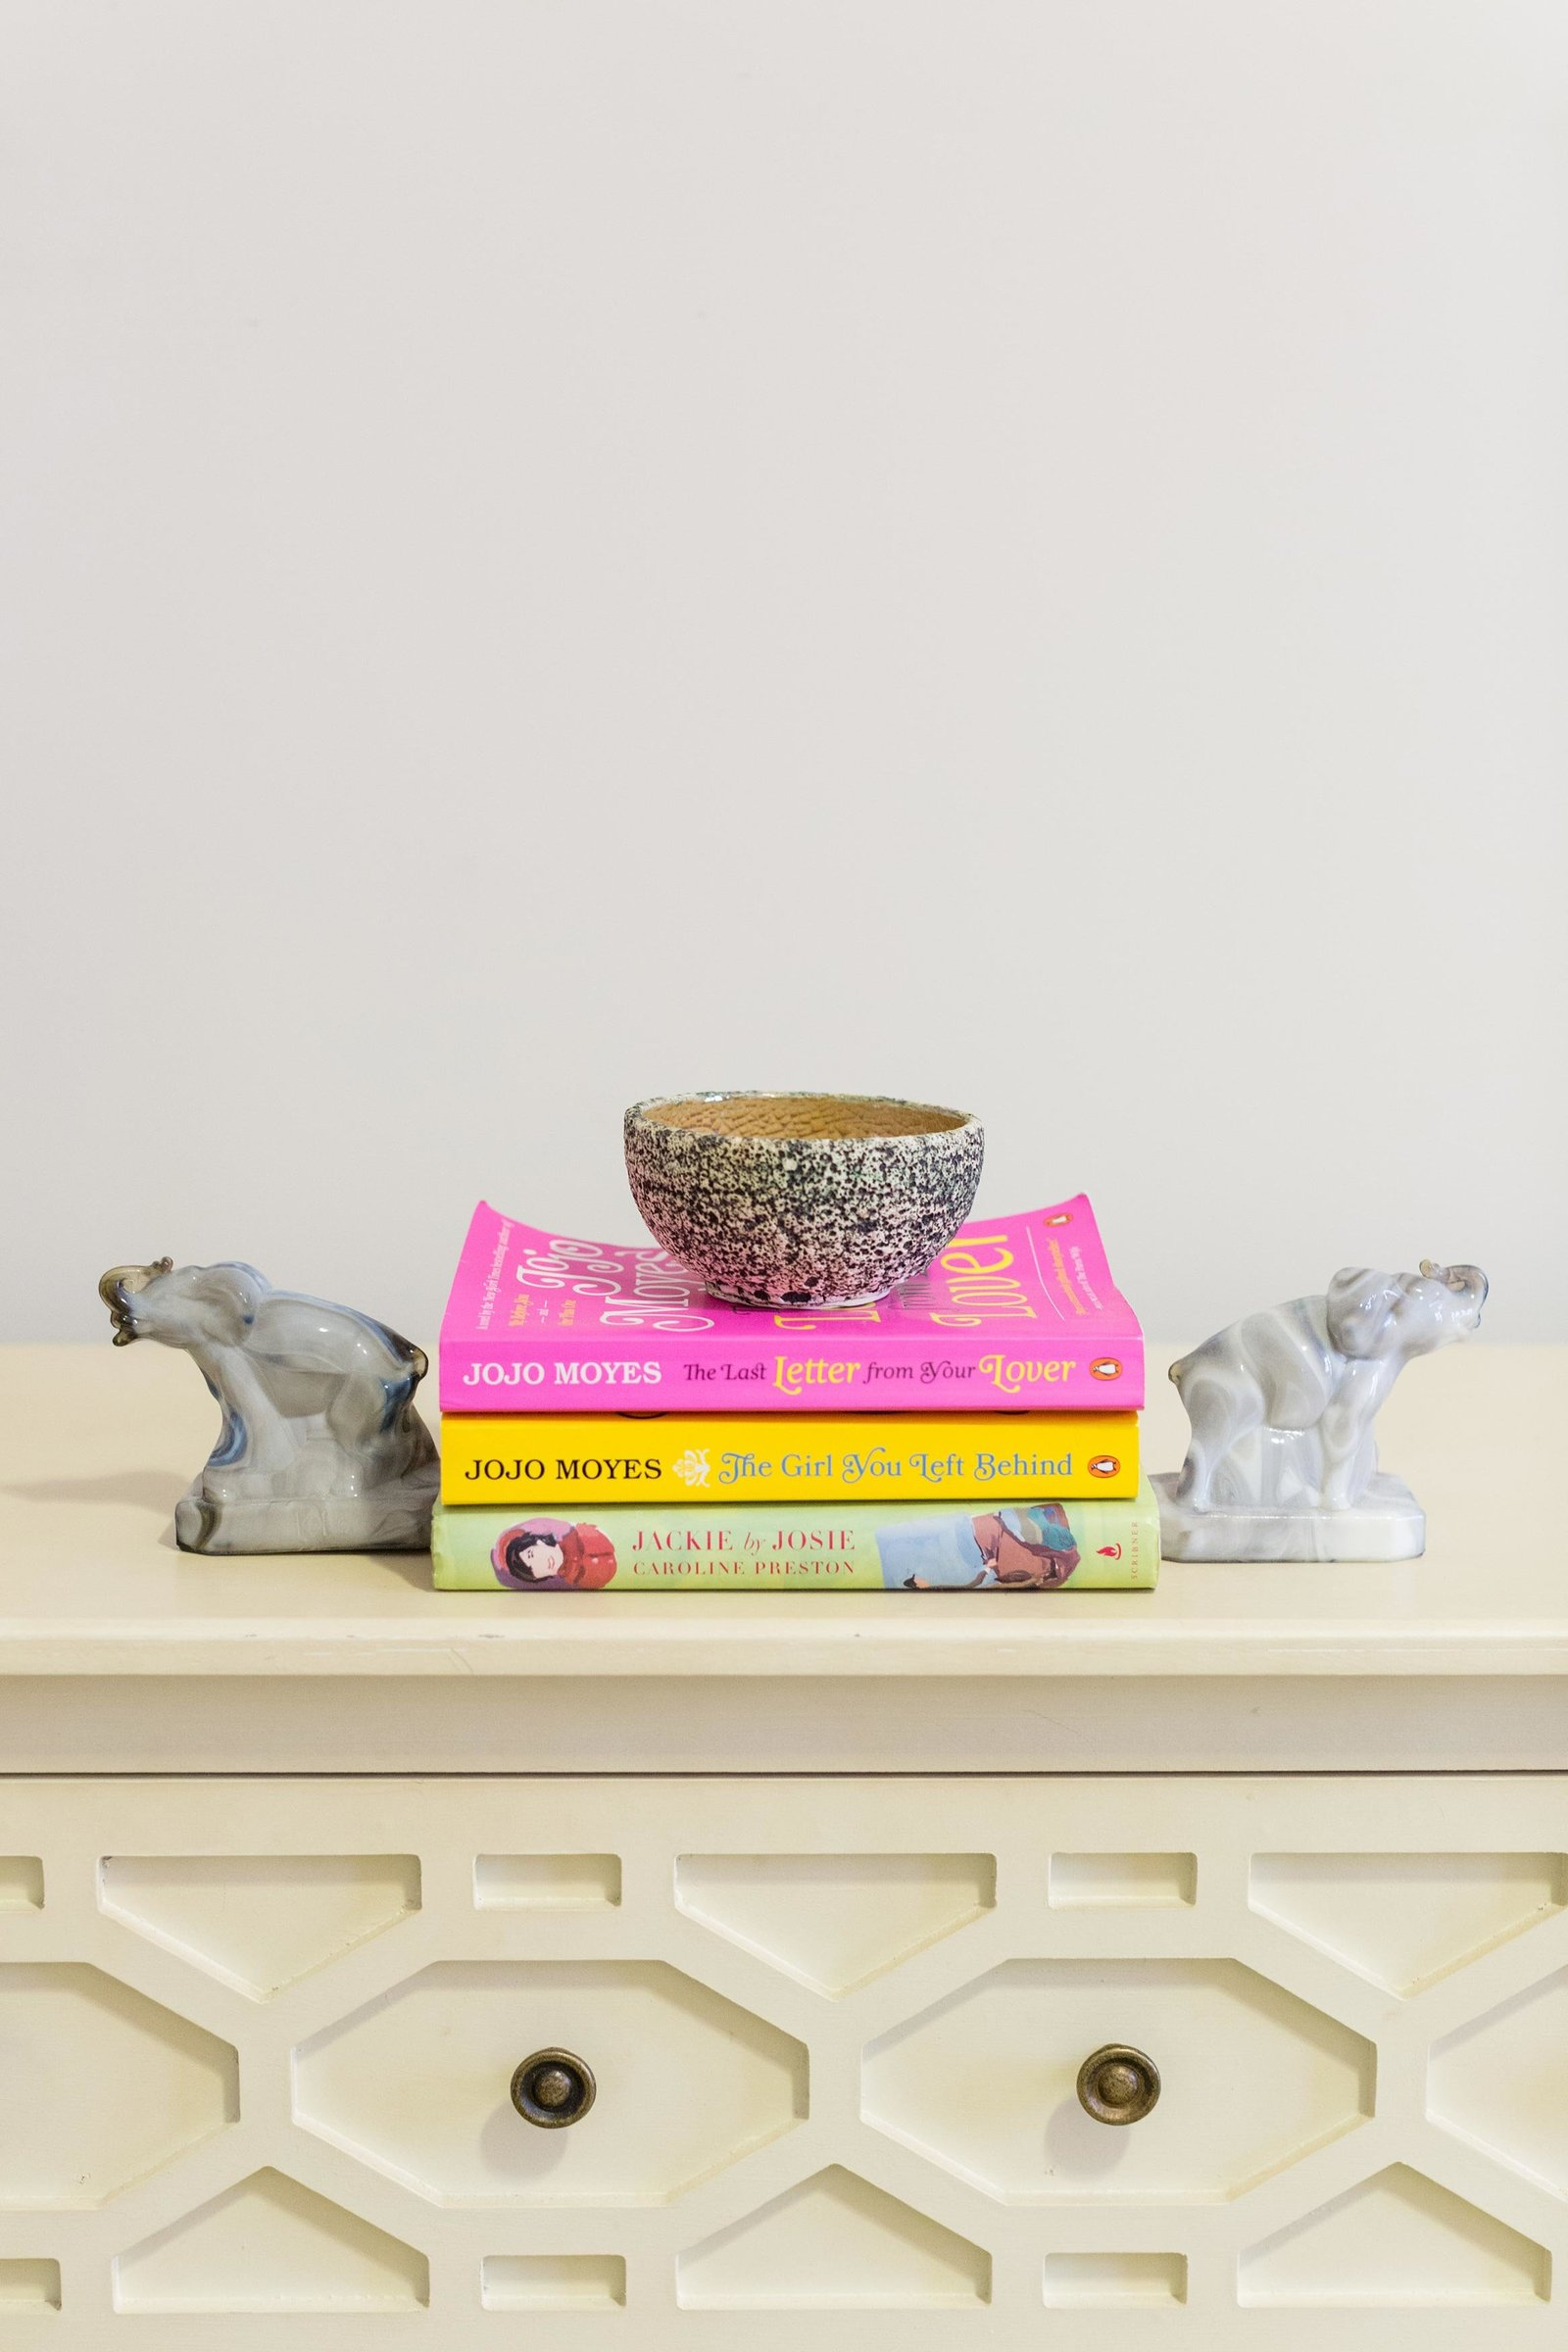 Books, ceramic dish, and bookends on a dresser.